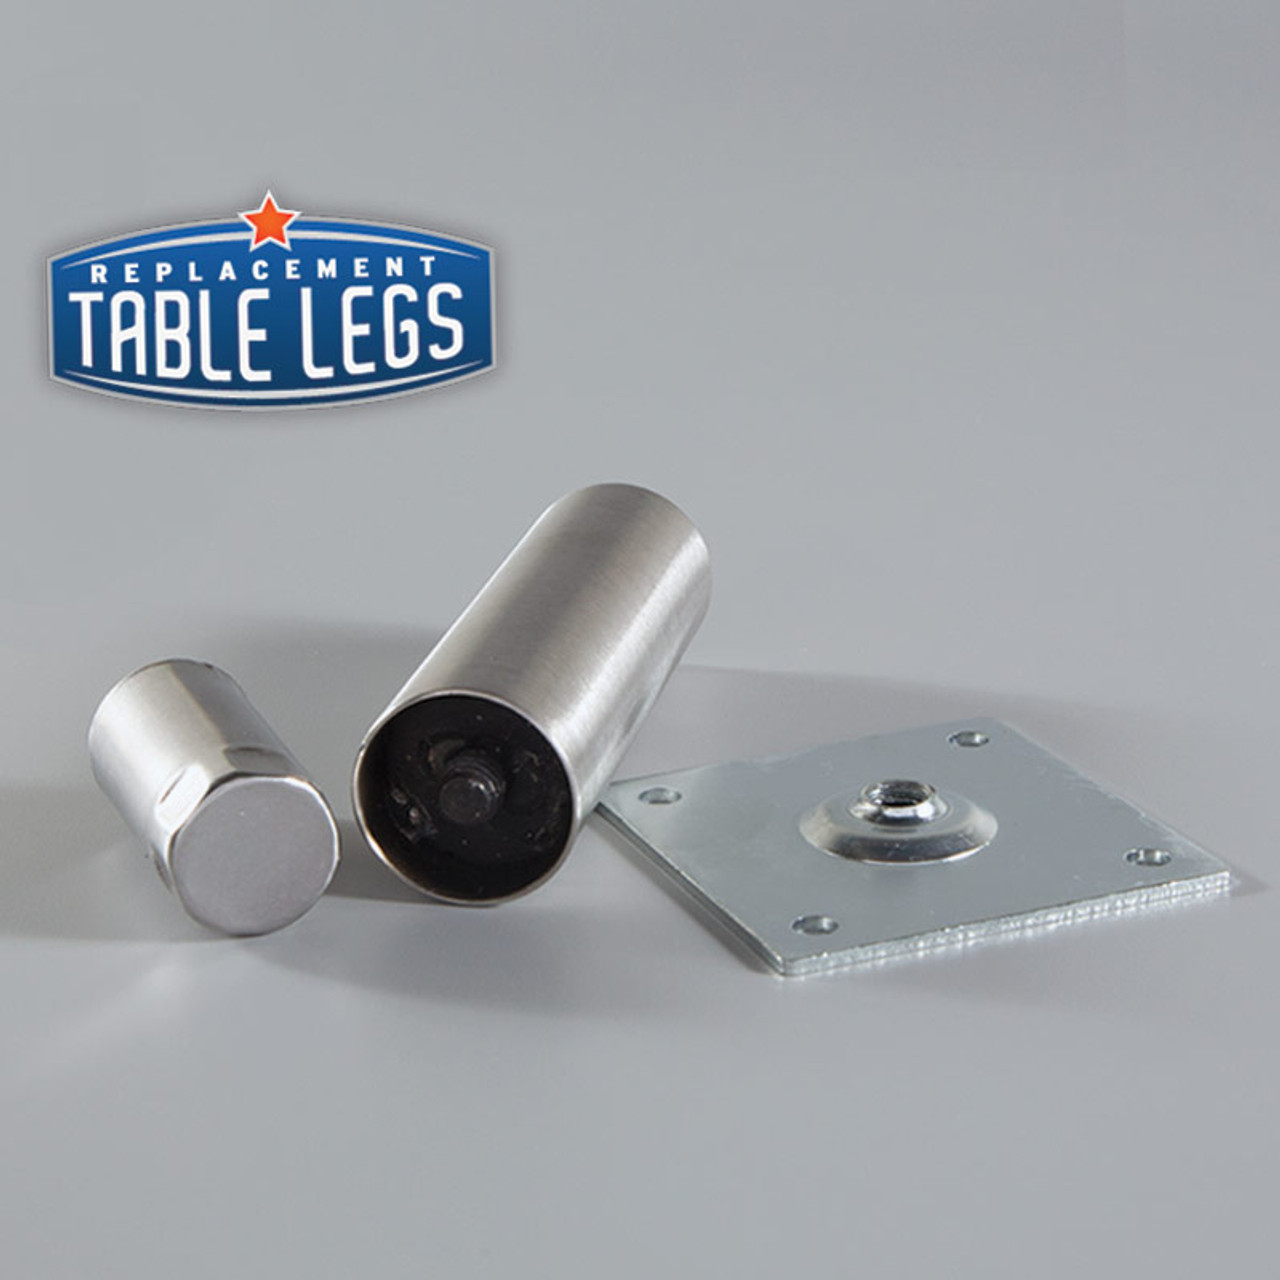 Heavy Duty Equipment Leg, Food Grade Stainless Steel, 6'' Equipment Leg - replacementtablelegs.com